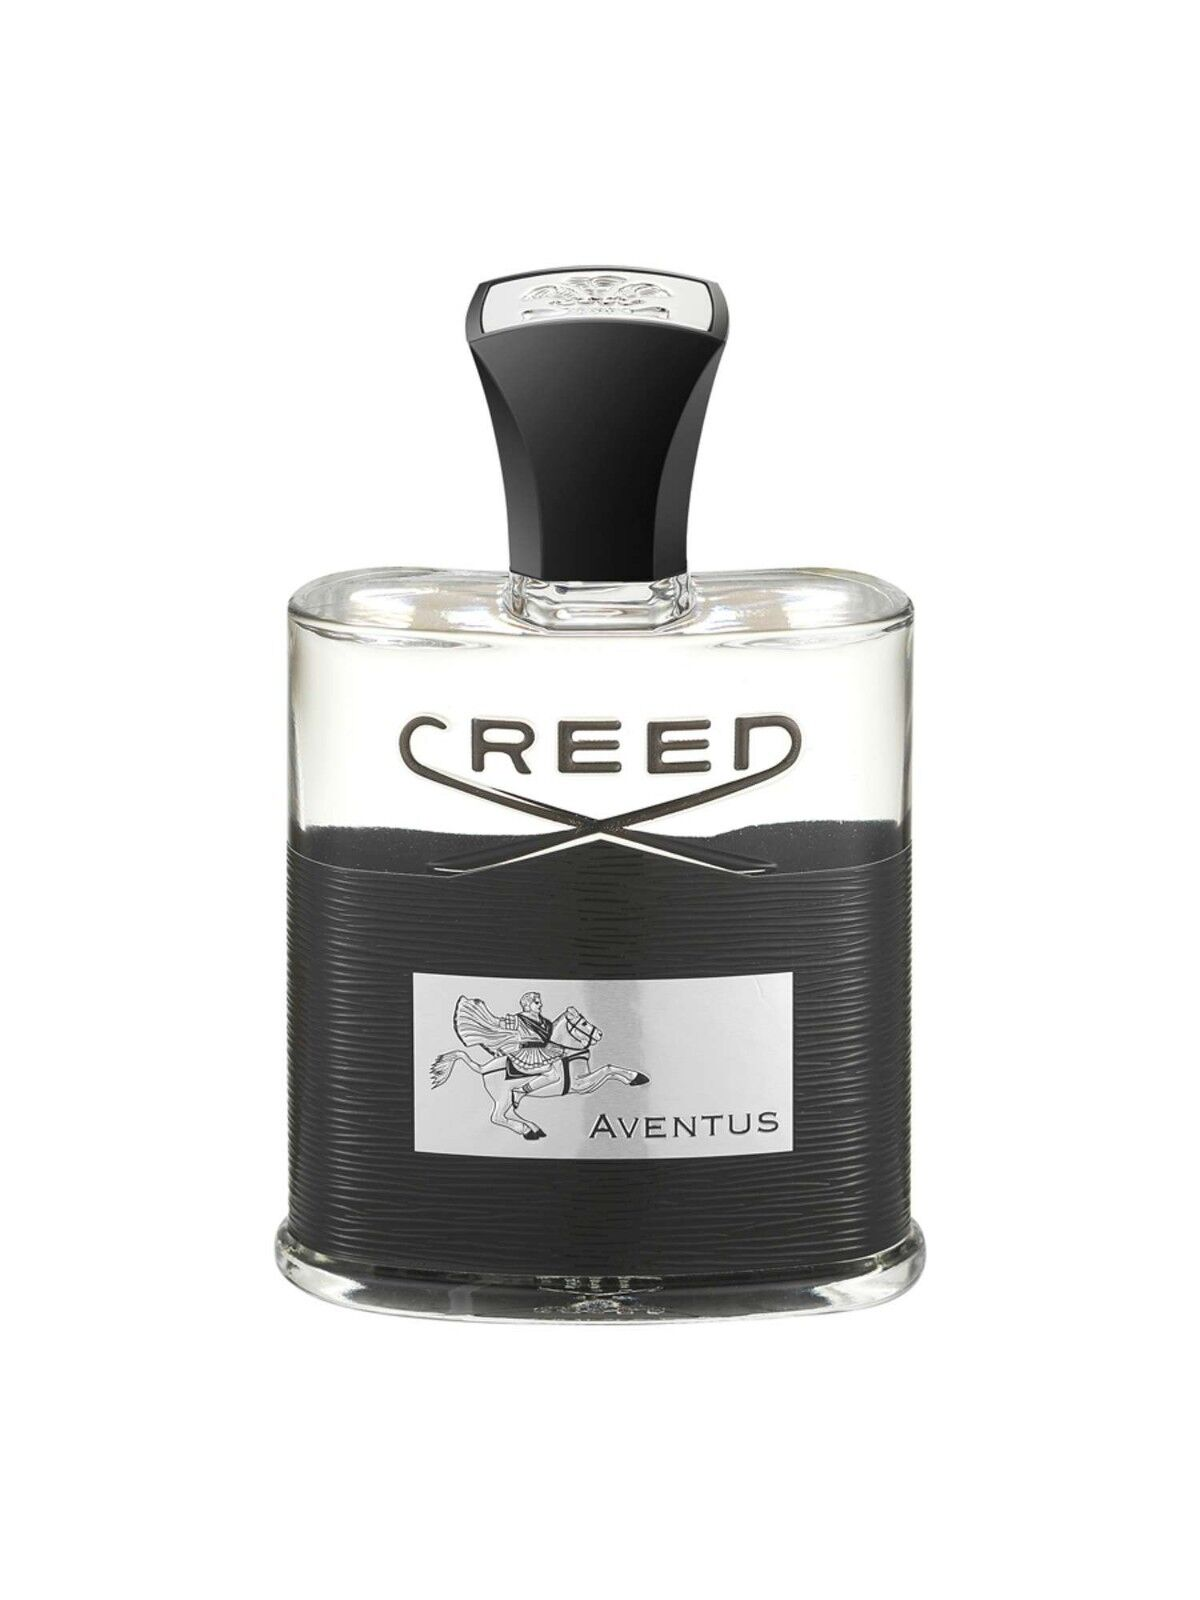 CREED AVENTUS AFTERSHAVE SCENTED BEARD OIL 50ML